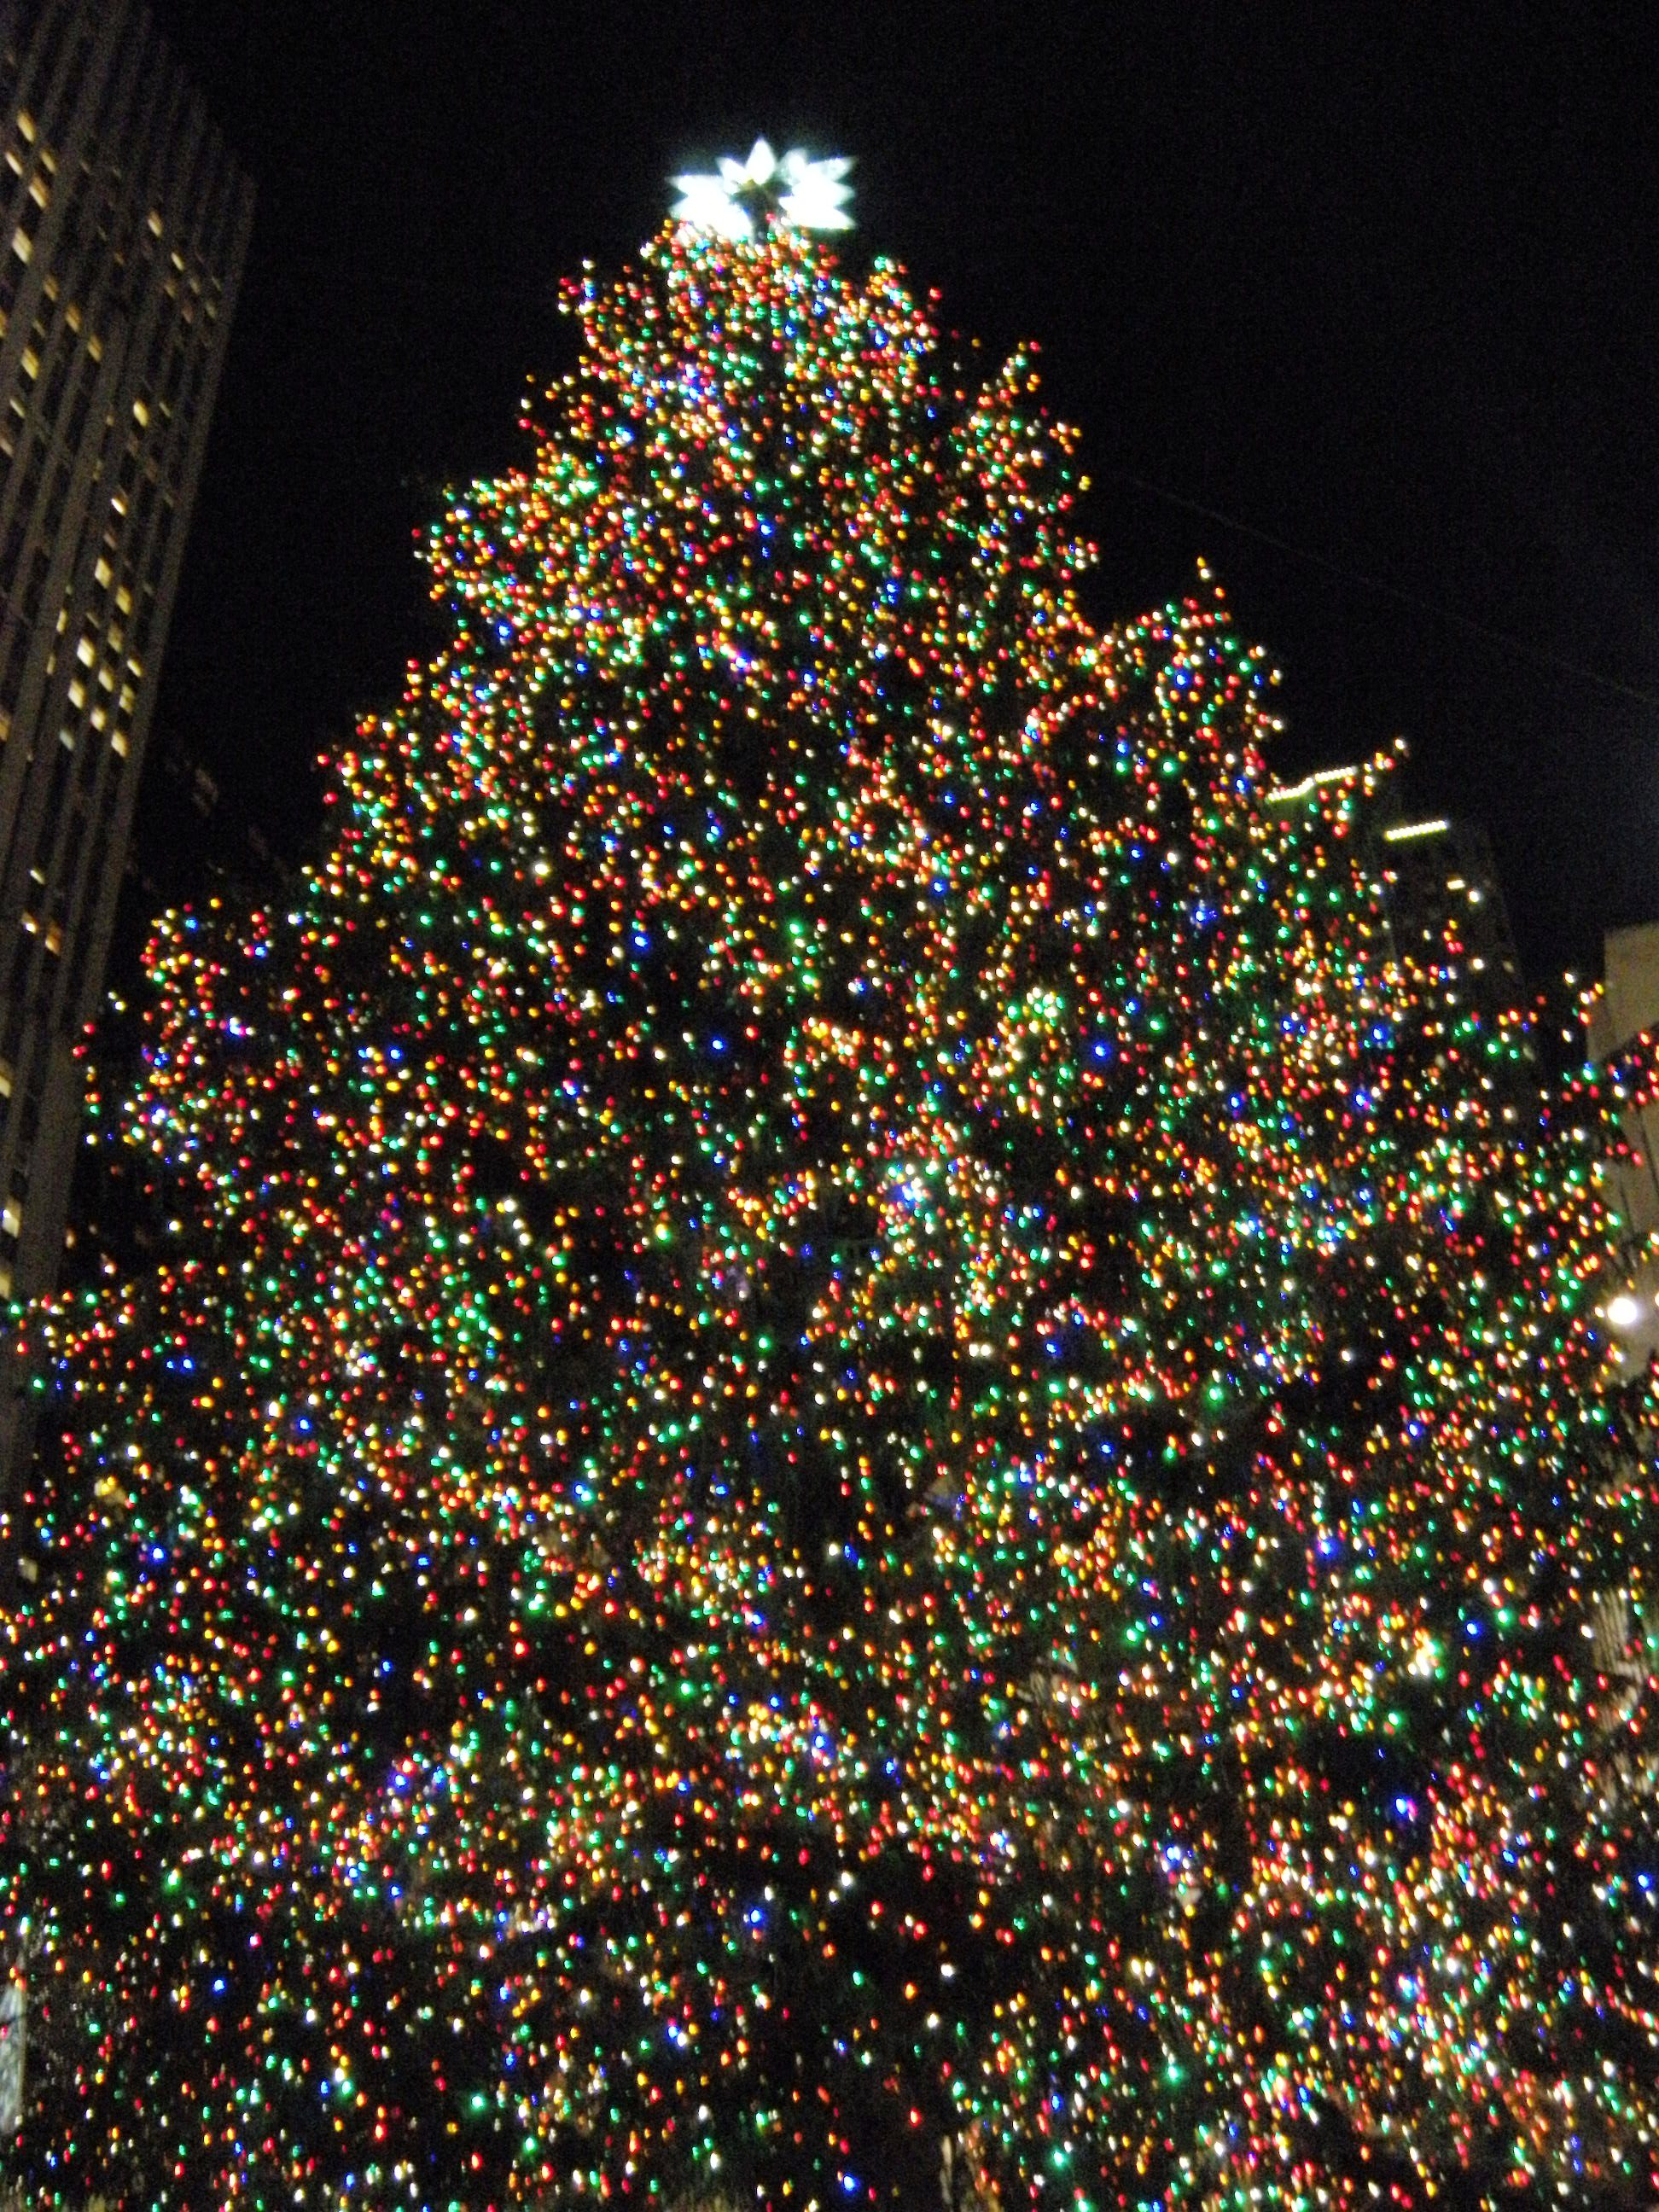 that i love christmastimeits truly my favorite time of the year and all my life i have wanted to have the christmas experience in new york cityto - Big Christmas Tree In New York